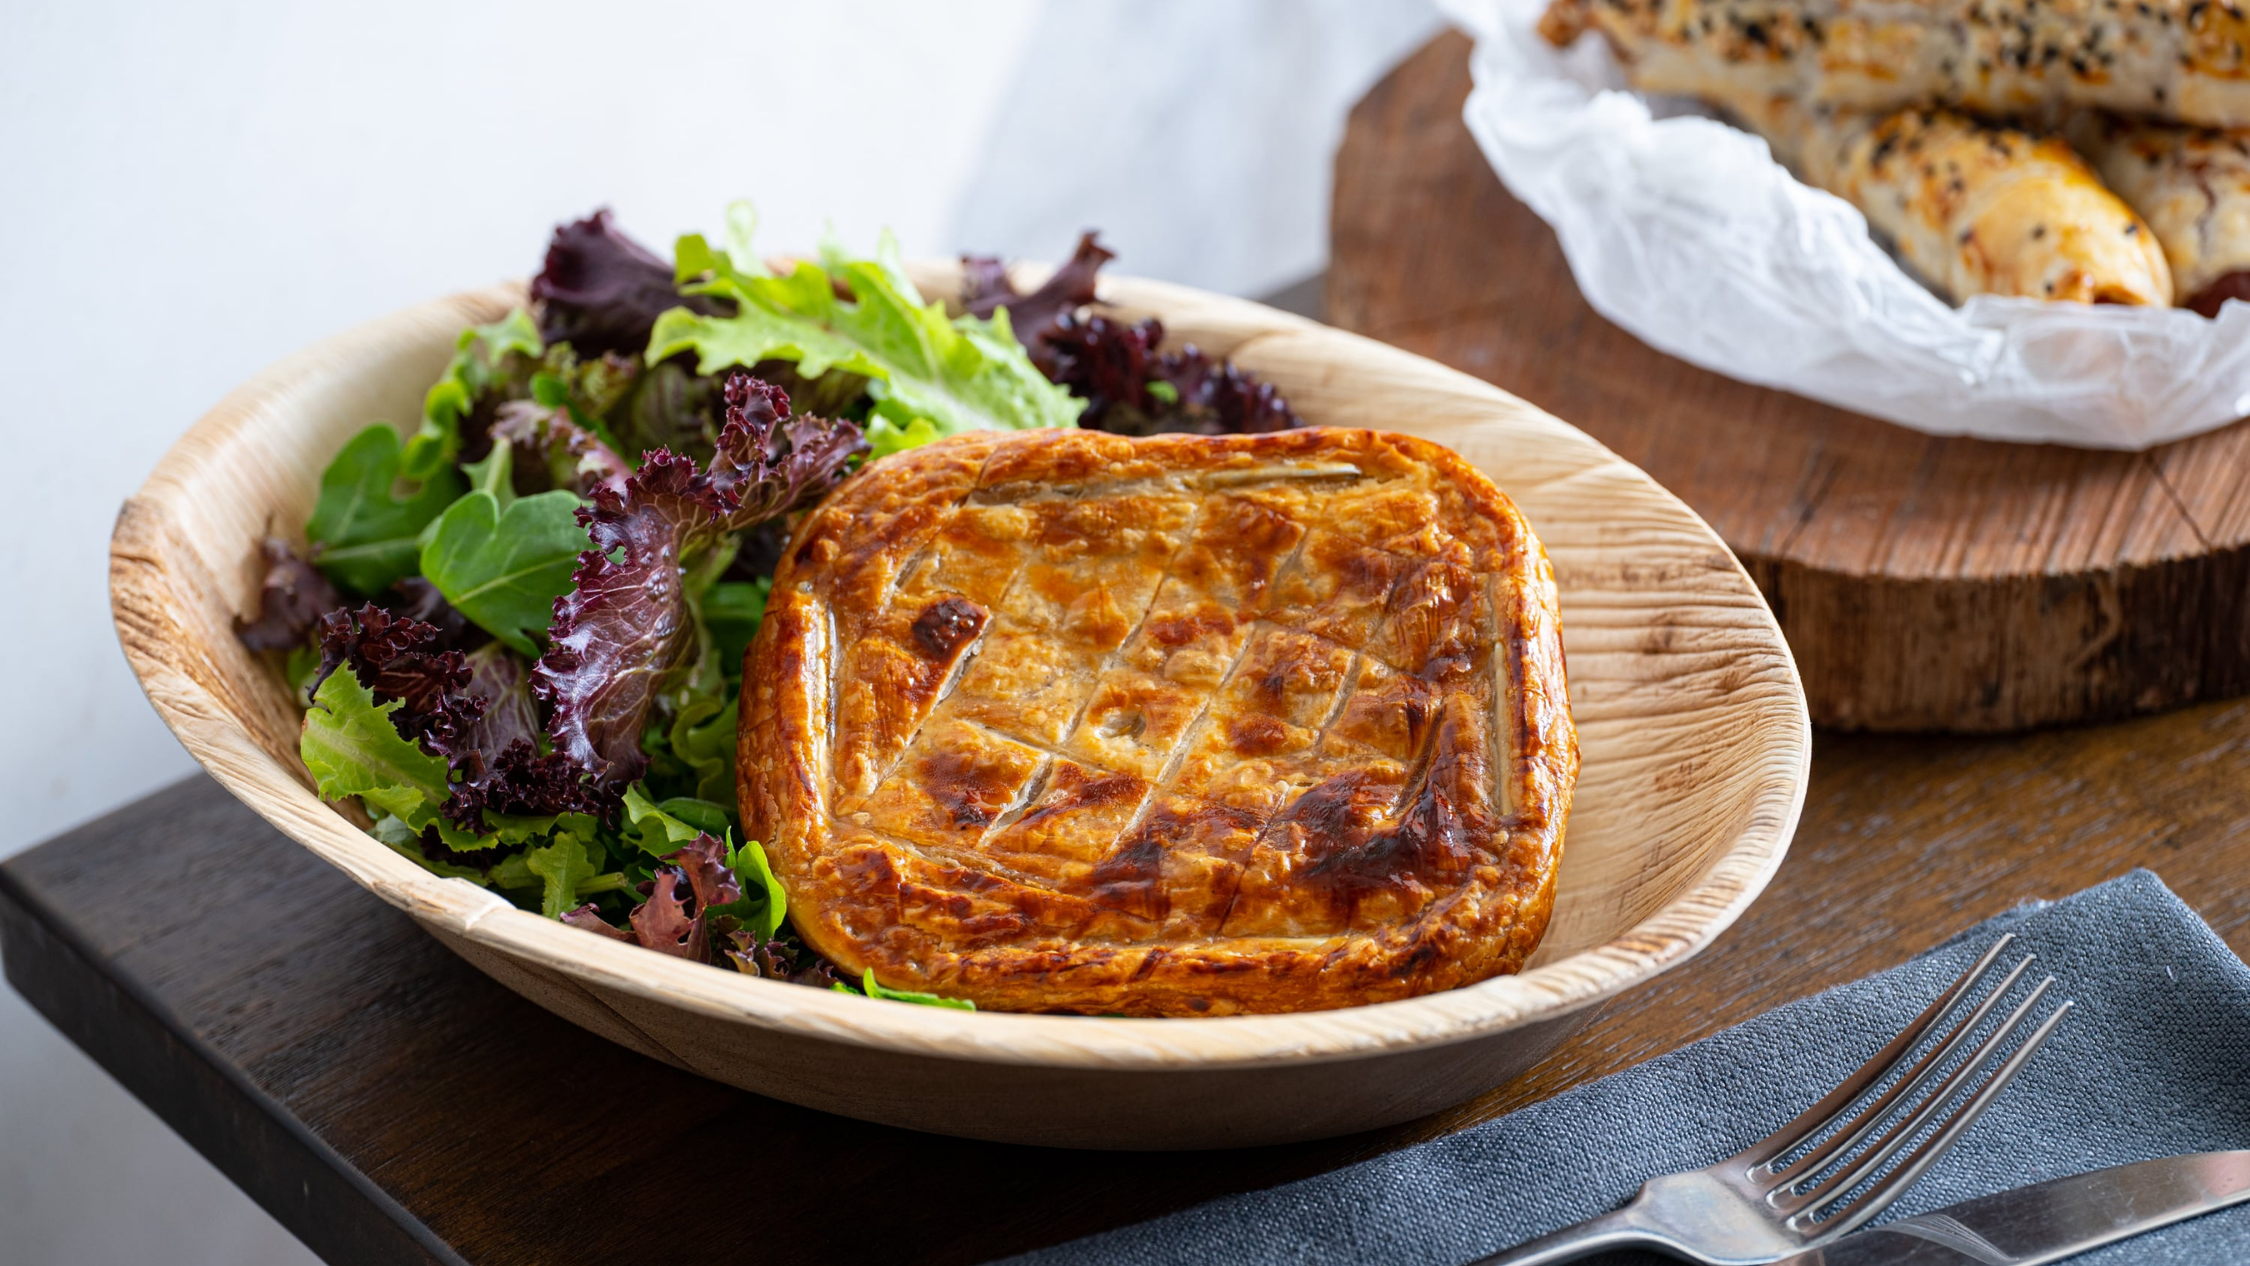 Pie and salad in a wooden bowl with cutlery in the foreground